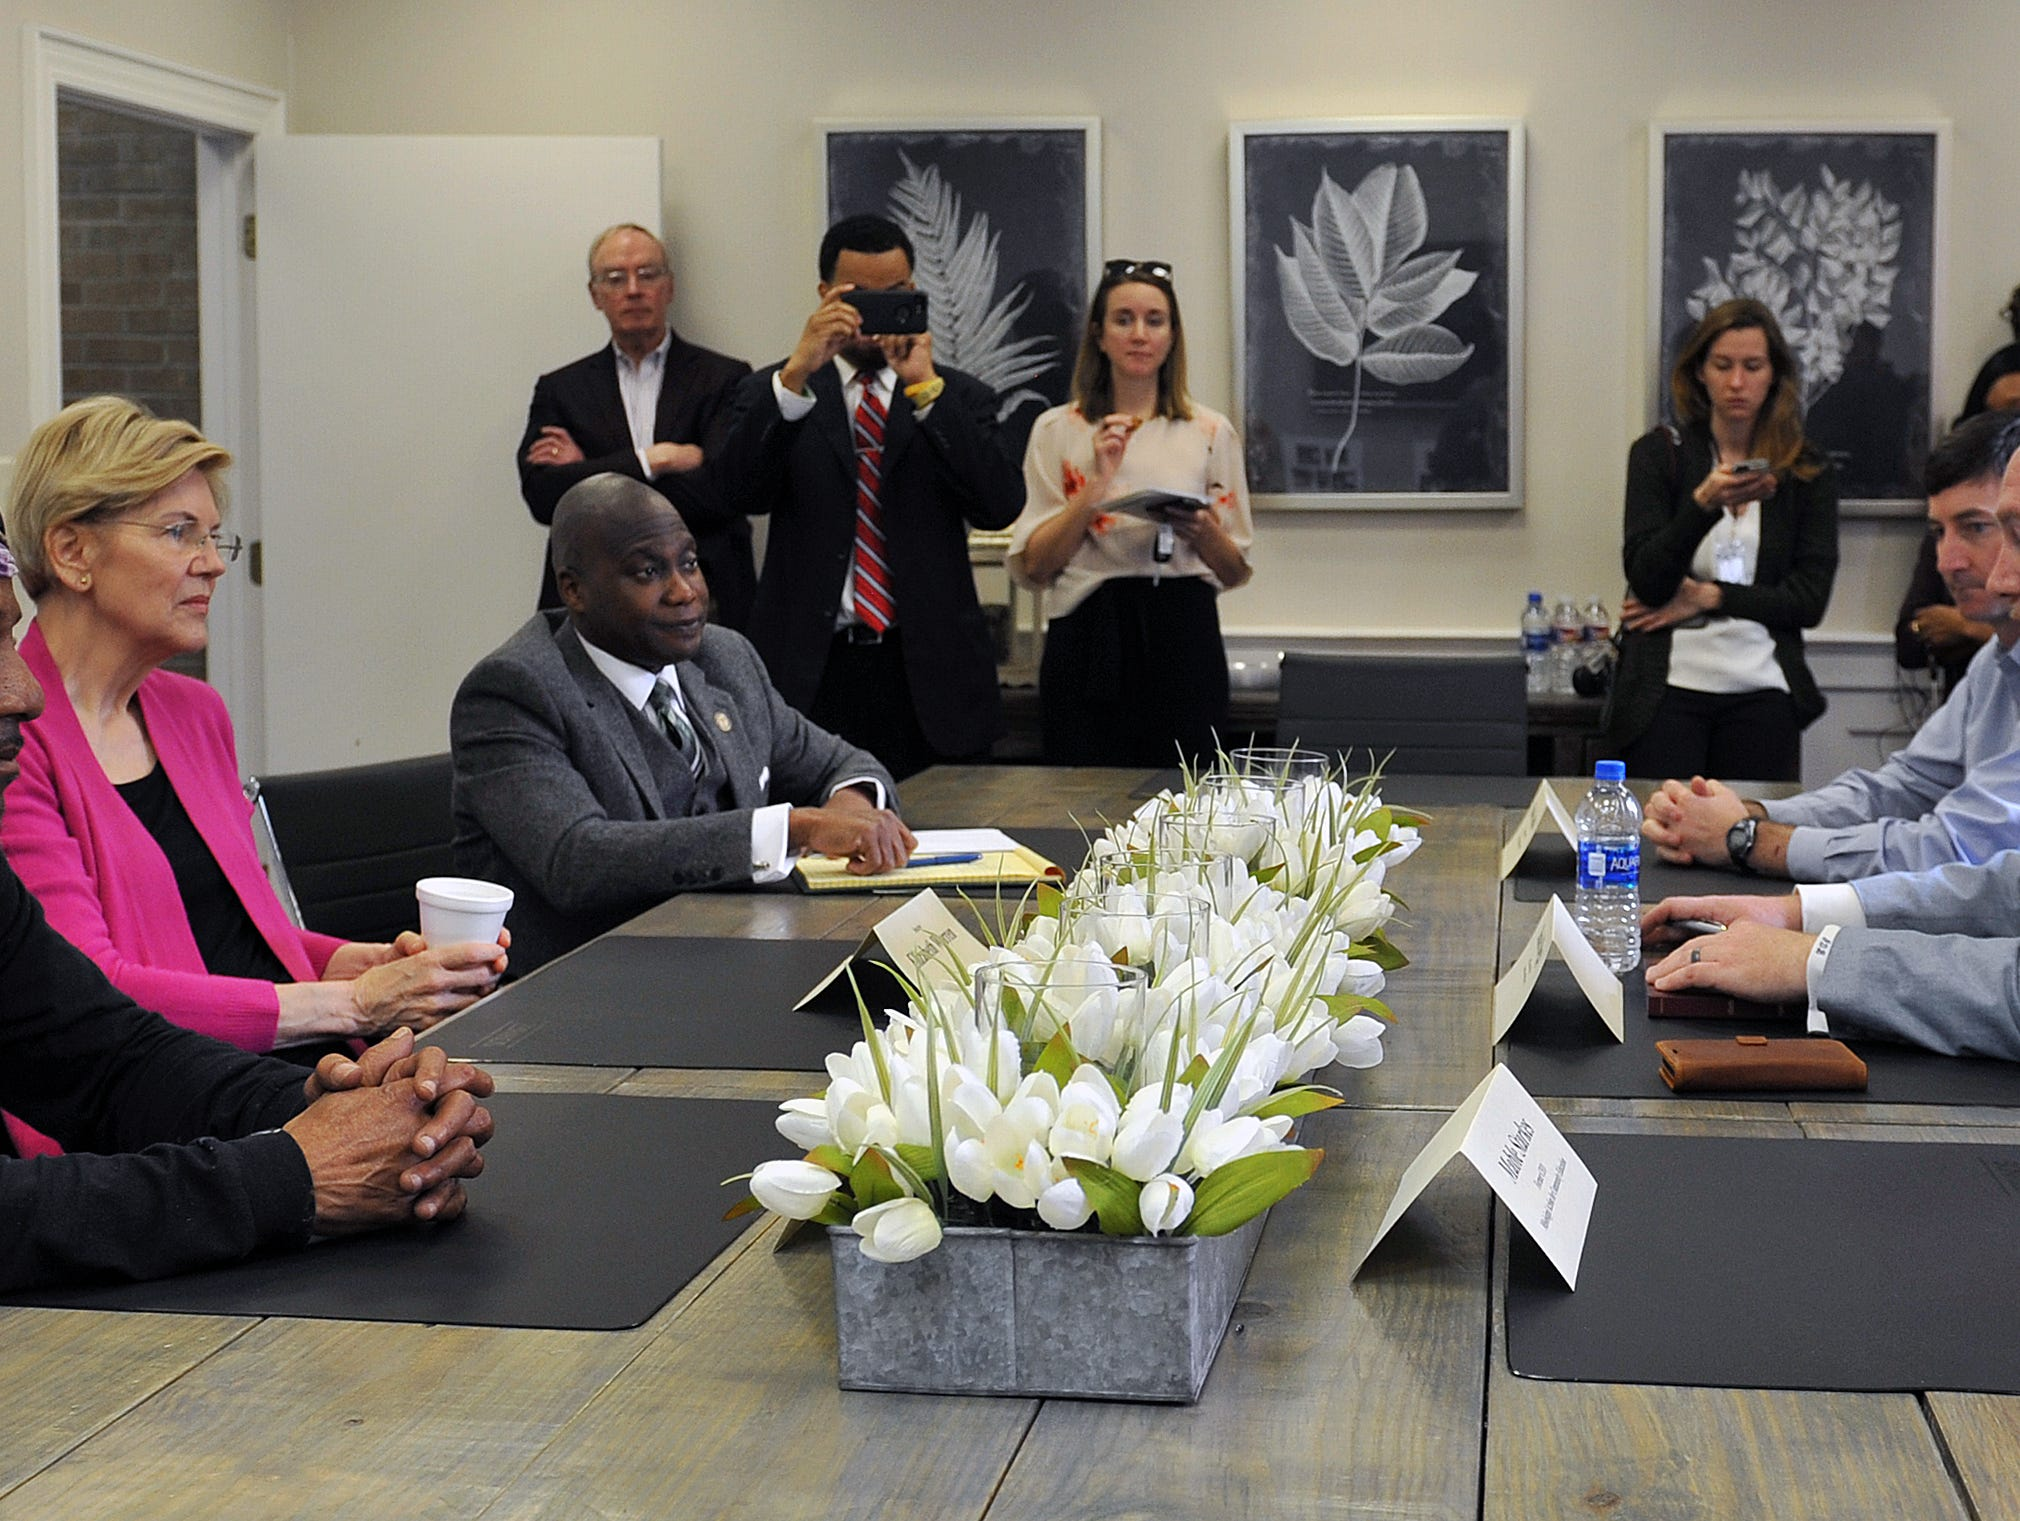 Presidential candidate Sen. Elizabeth Warren, D-Mass., second from left, discusses housing issues with Greenville Mayor Erick Simmons, local residents and housing experts, including Daniel Boggs, seated, second from right, CEO of the Greater Greenville Housing & Revitalization Association, Monday, March 18, 2019.